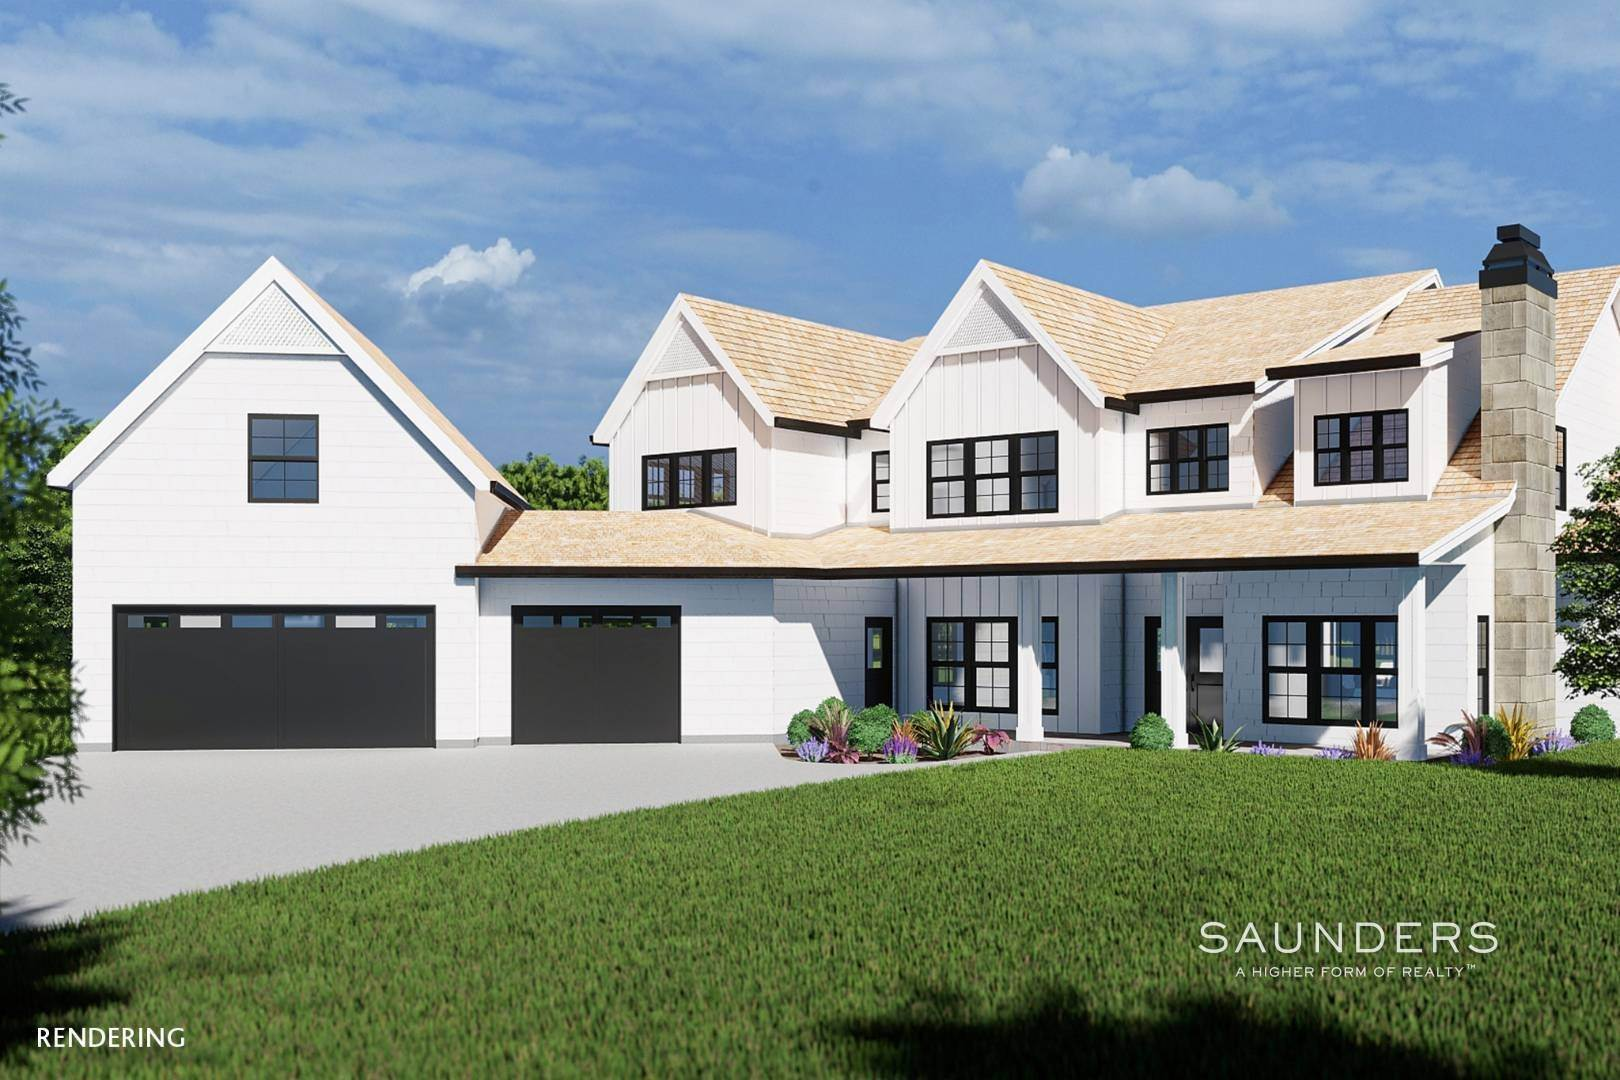 Single Family Homes for Sale at Sagaponack New Construction With Pool And Tennis 21 Forest Crossing, Sagaponack, Southampton Town, NY 11962